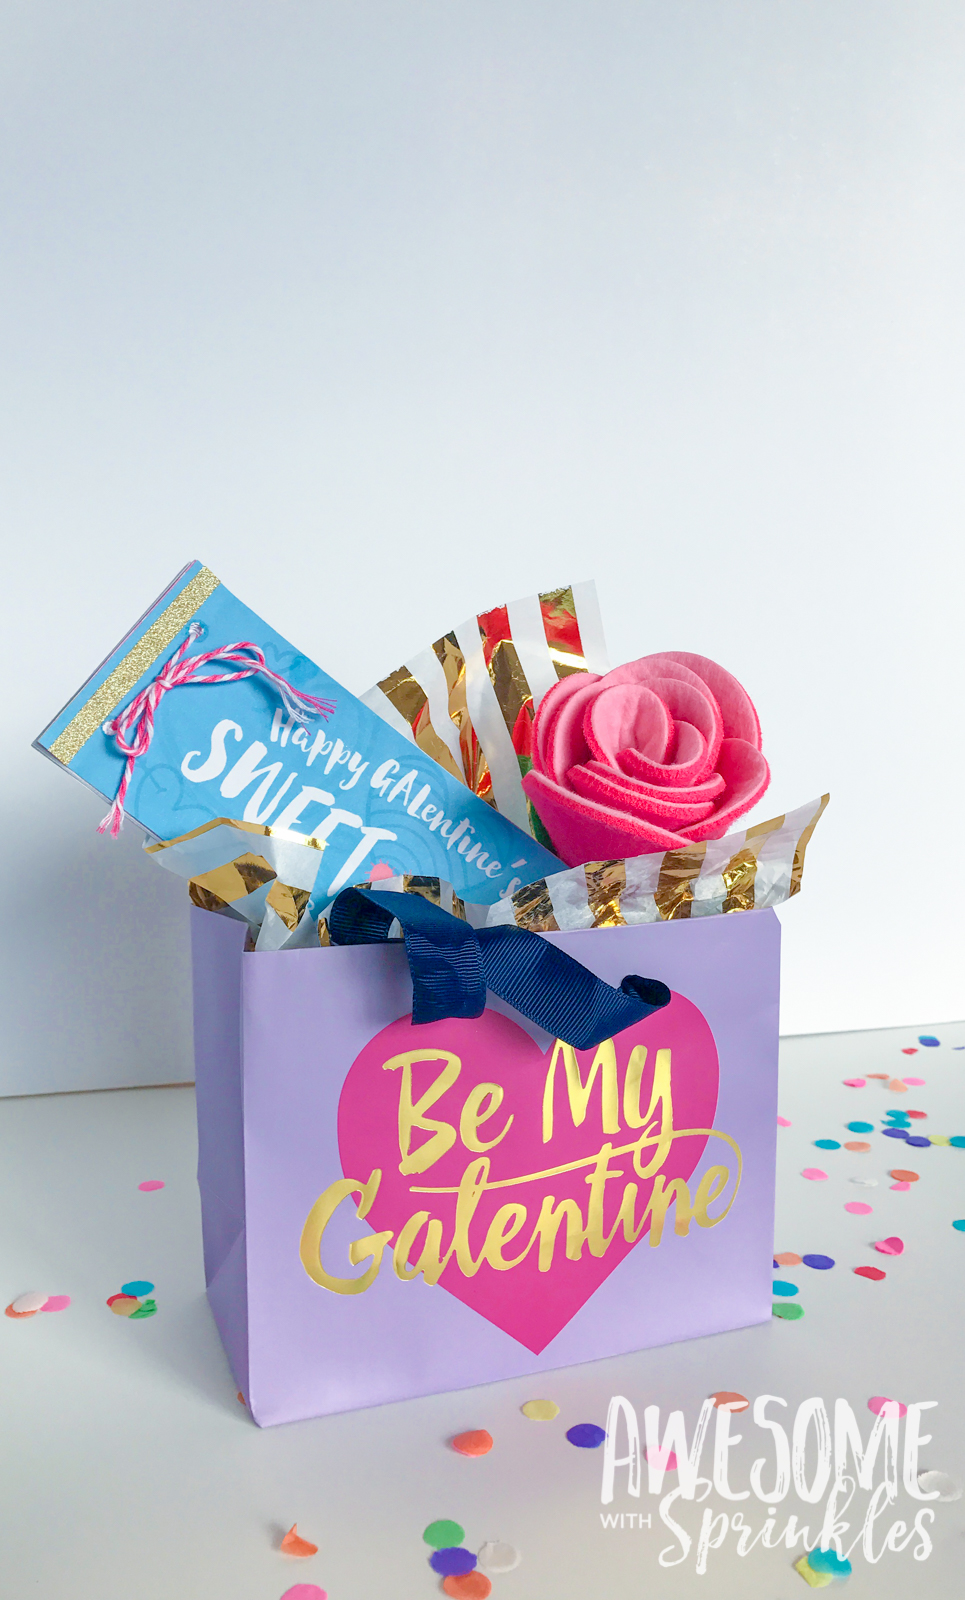 Diy Galentines Day Sweet Stuff Coupon Book Awesome With Sprinkles